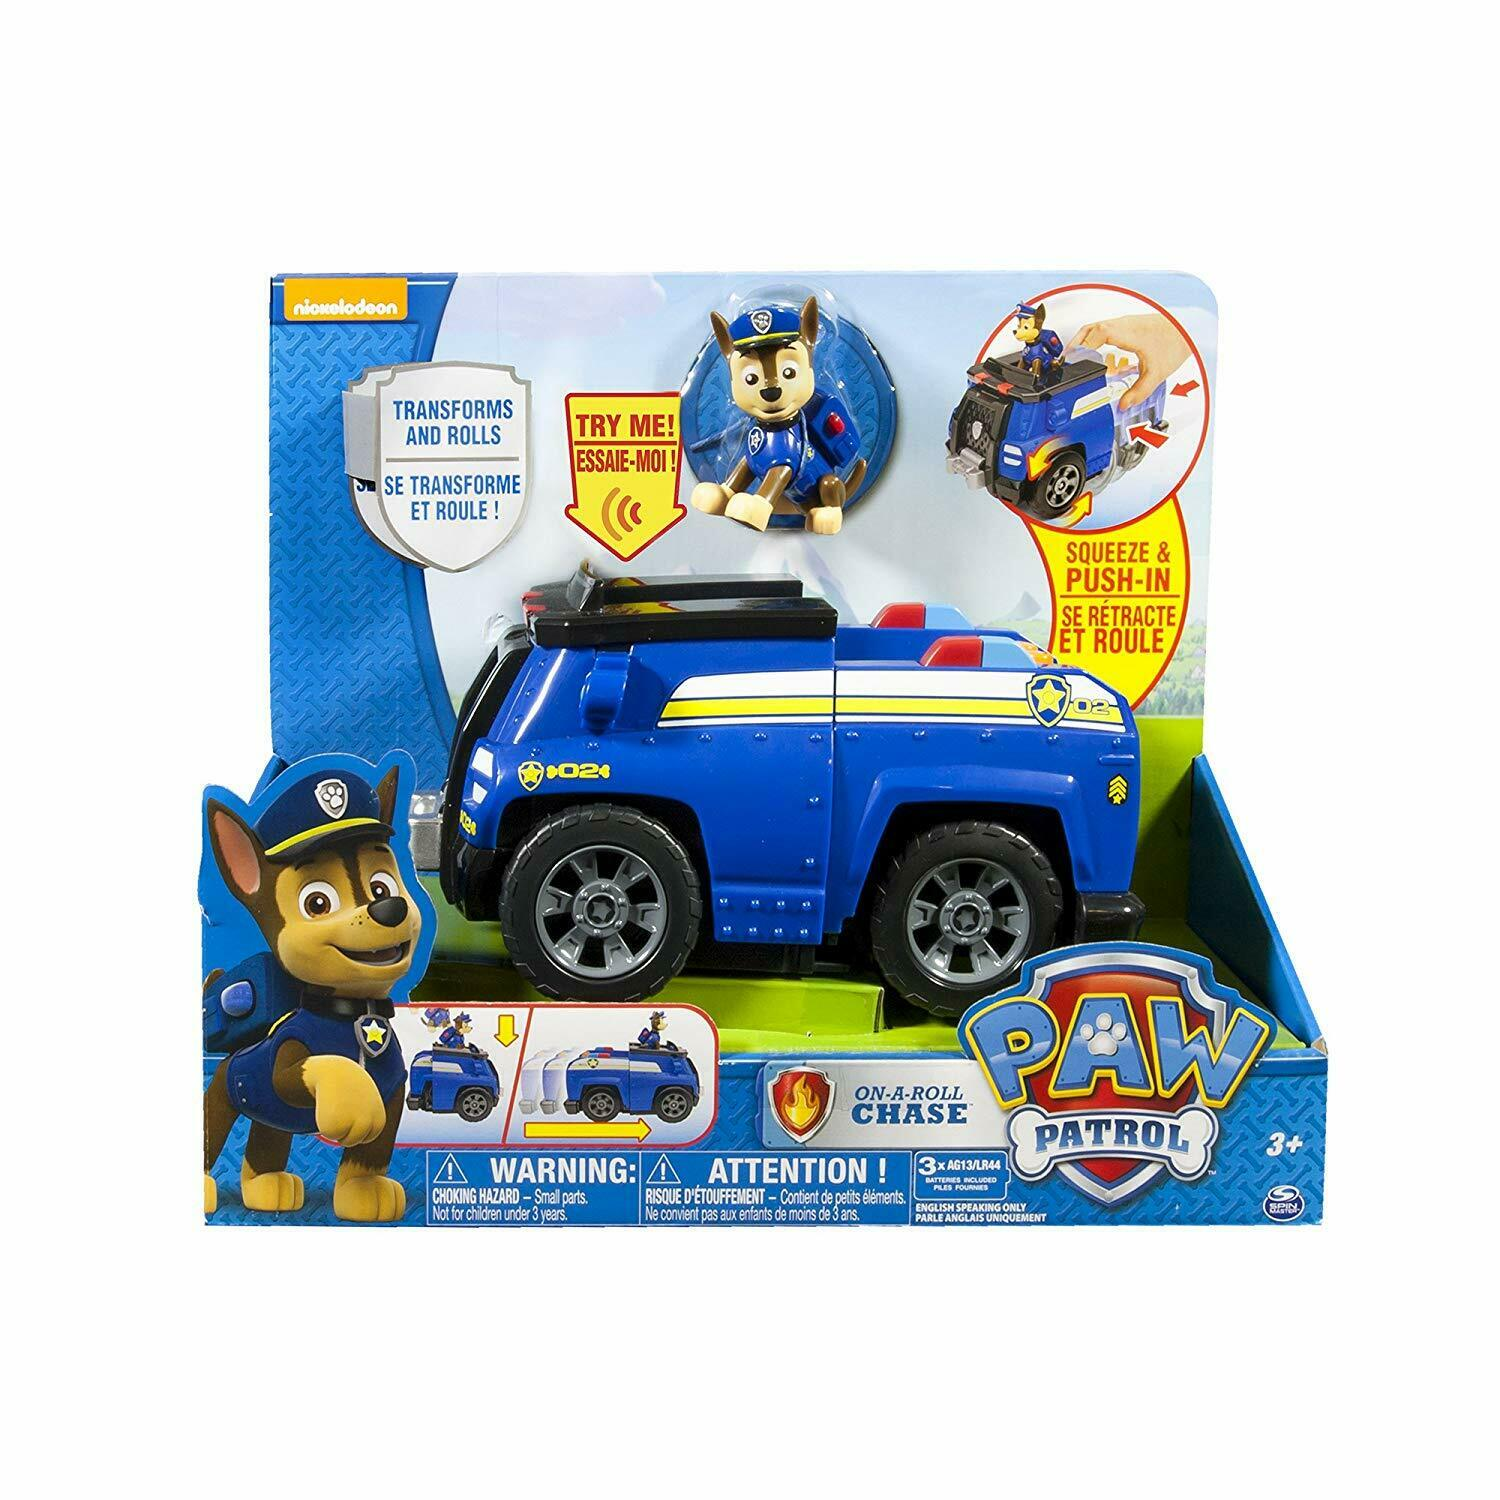 Paw Patrol 6032987 -Deluxe Vehicles, Assorted Models